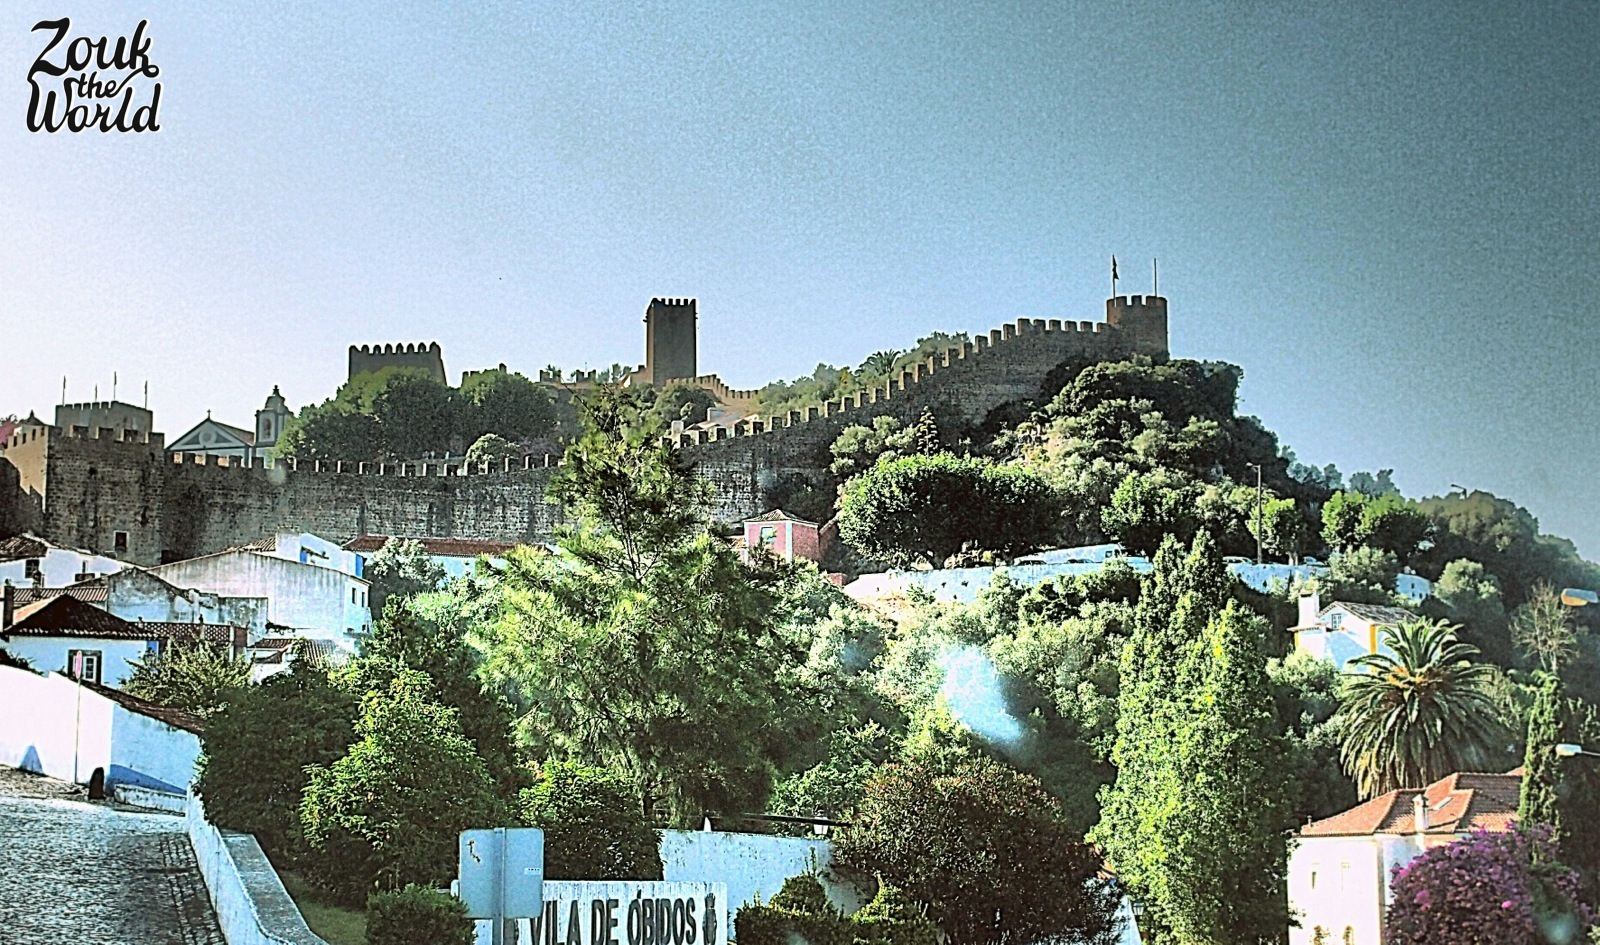 Óbidos seen from the road leading to the city